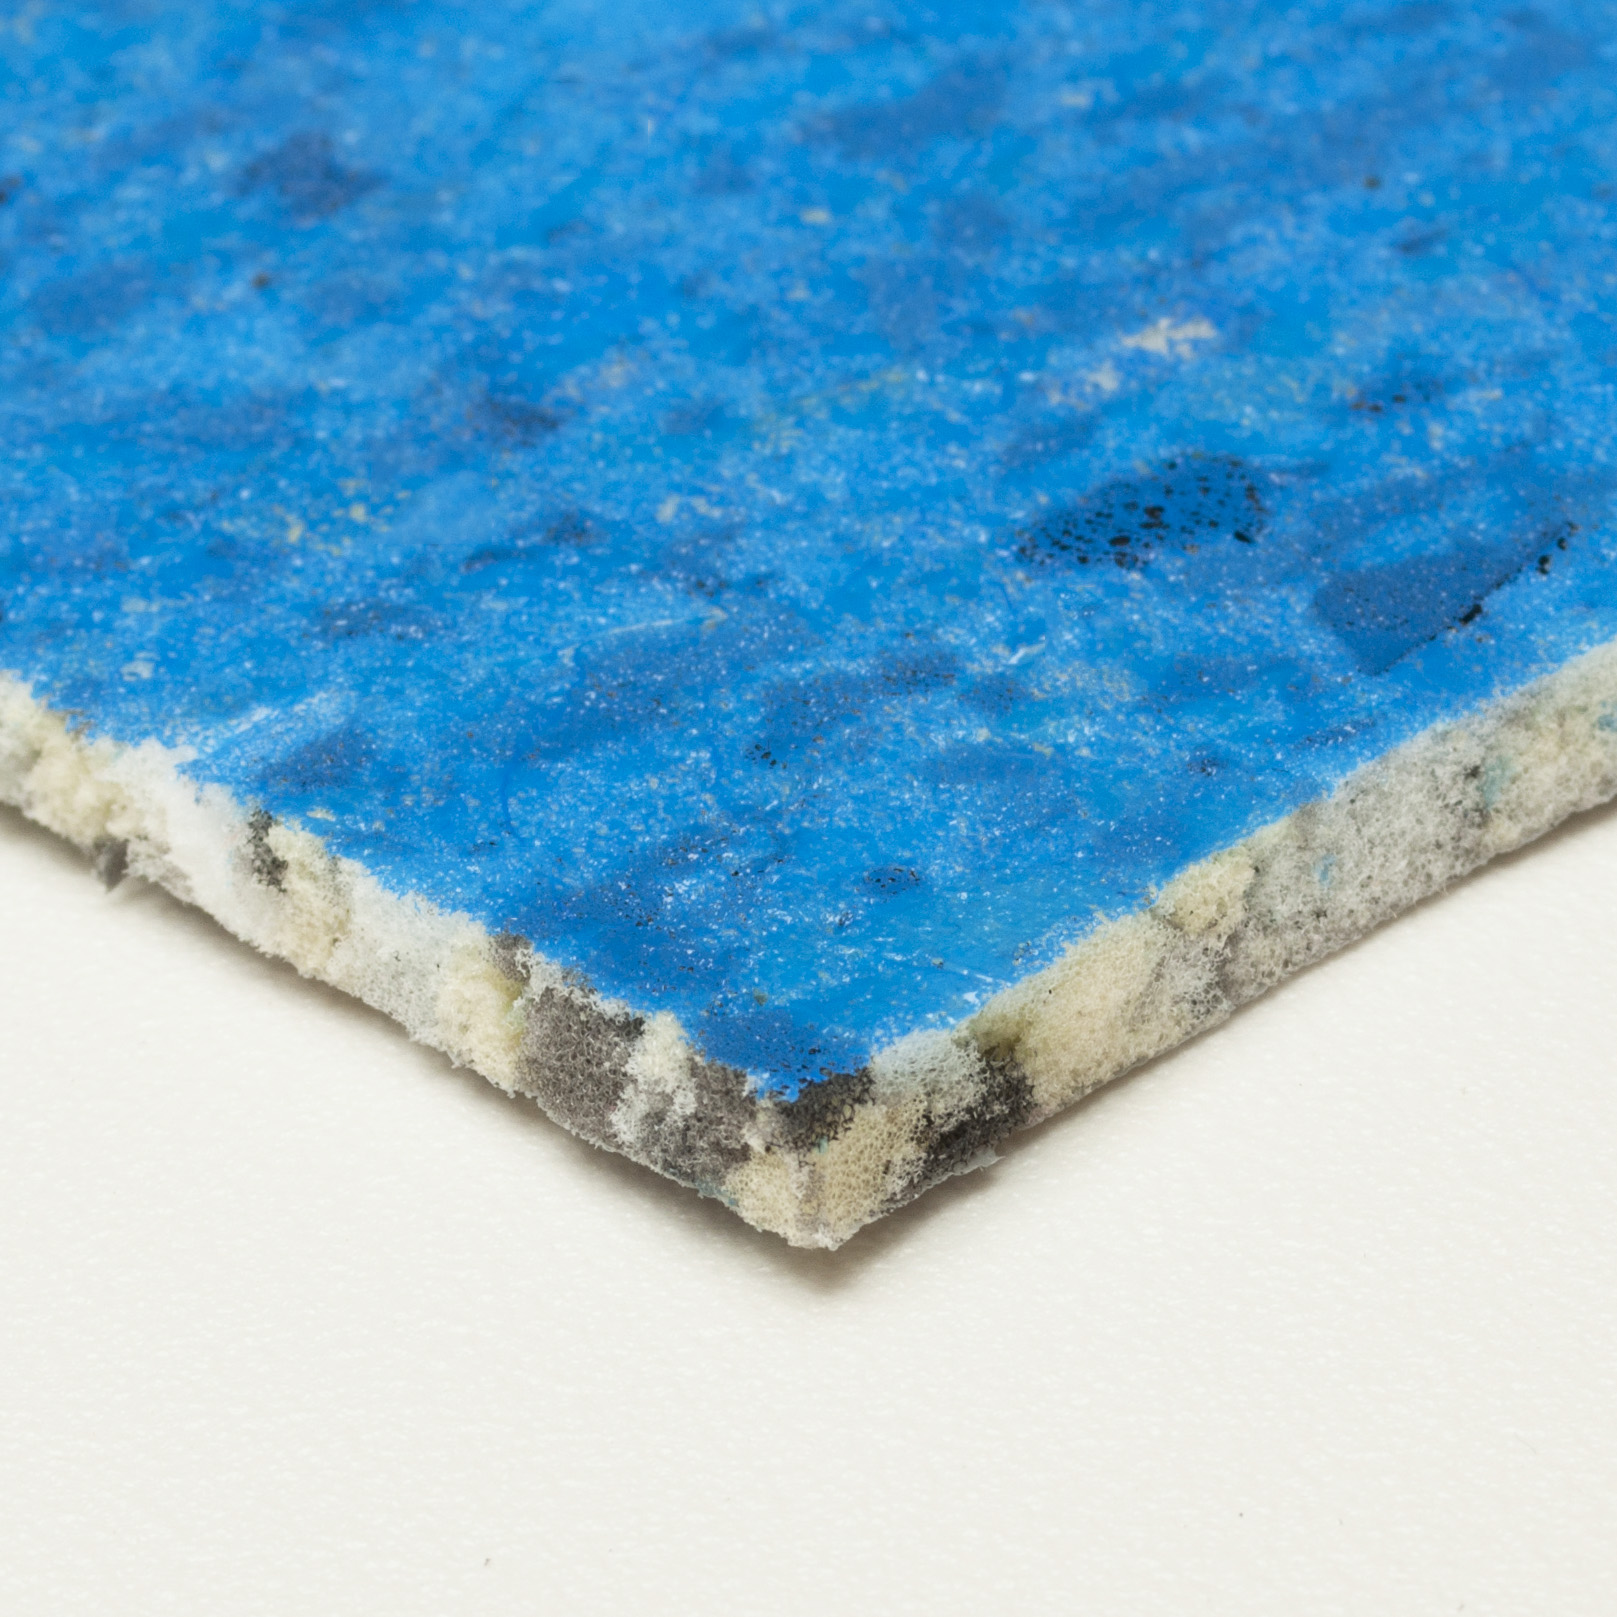 Dunlop Carpet Underlay Types